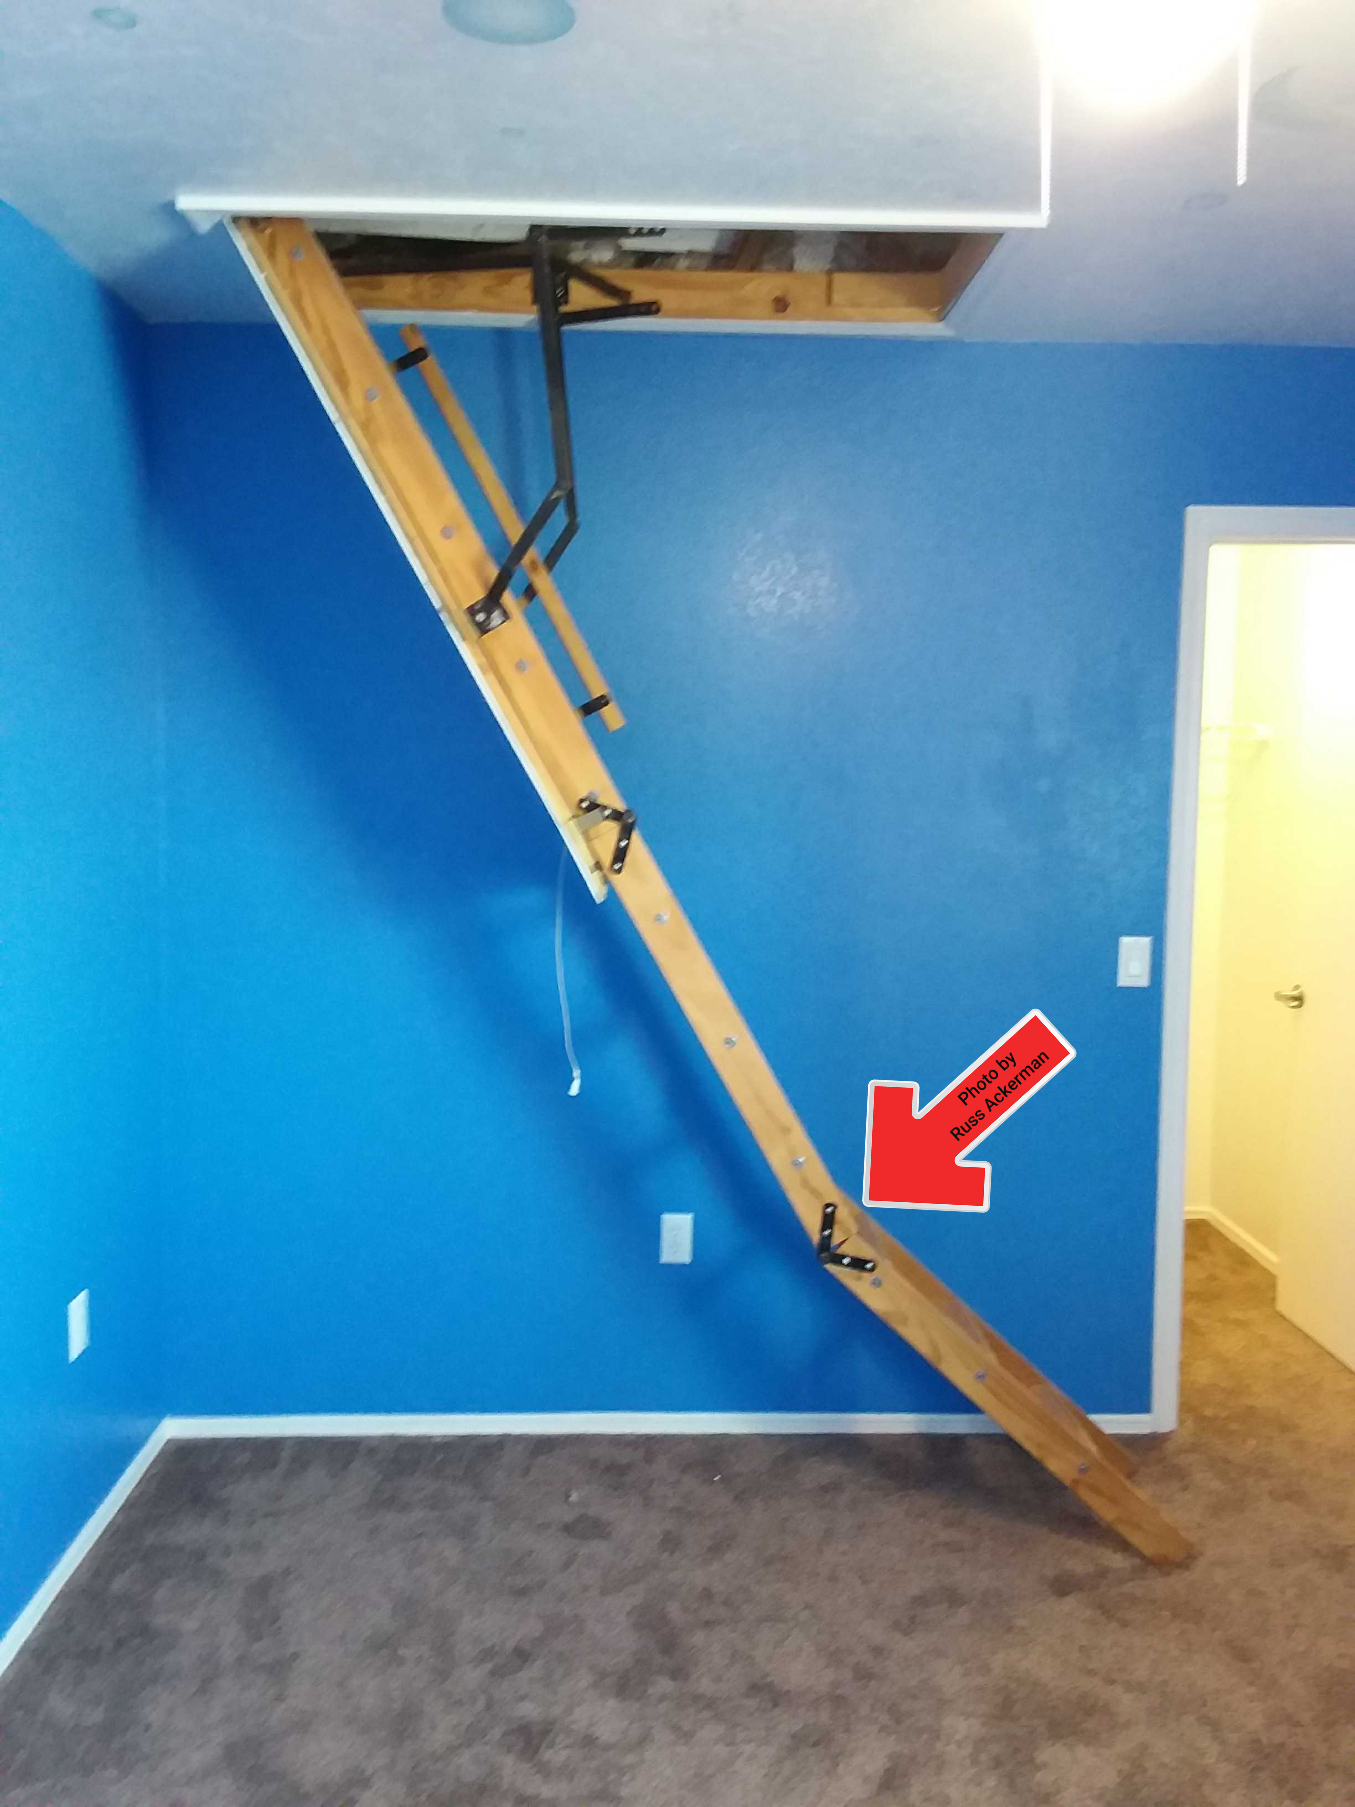 This attic stairway is a safety hazard, the stairs need to be property cut so the stairs are straight and properly supported at the floor.